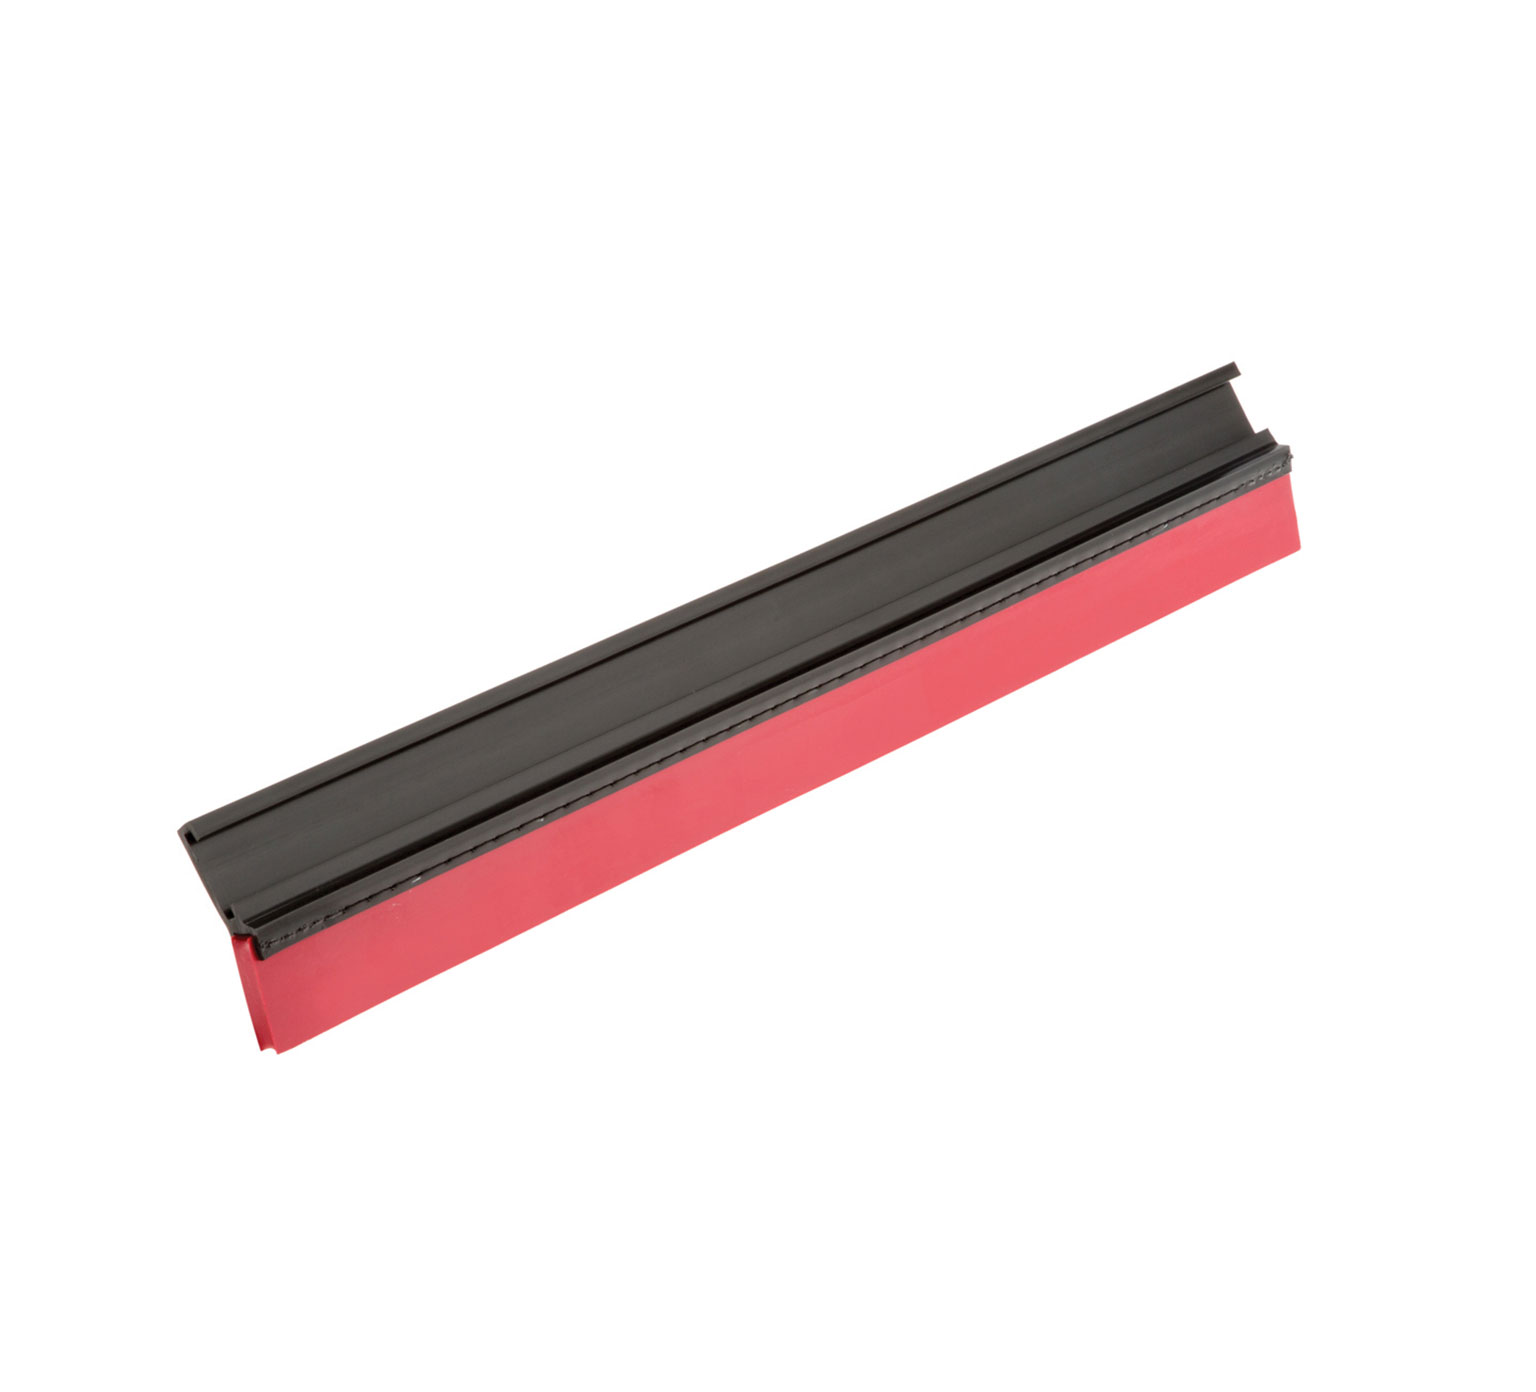 364246 Linatex Side Squeegee Kit – 22 in x 559 mm alt 1